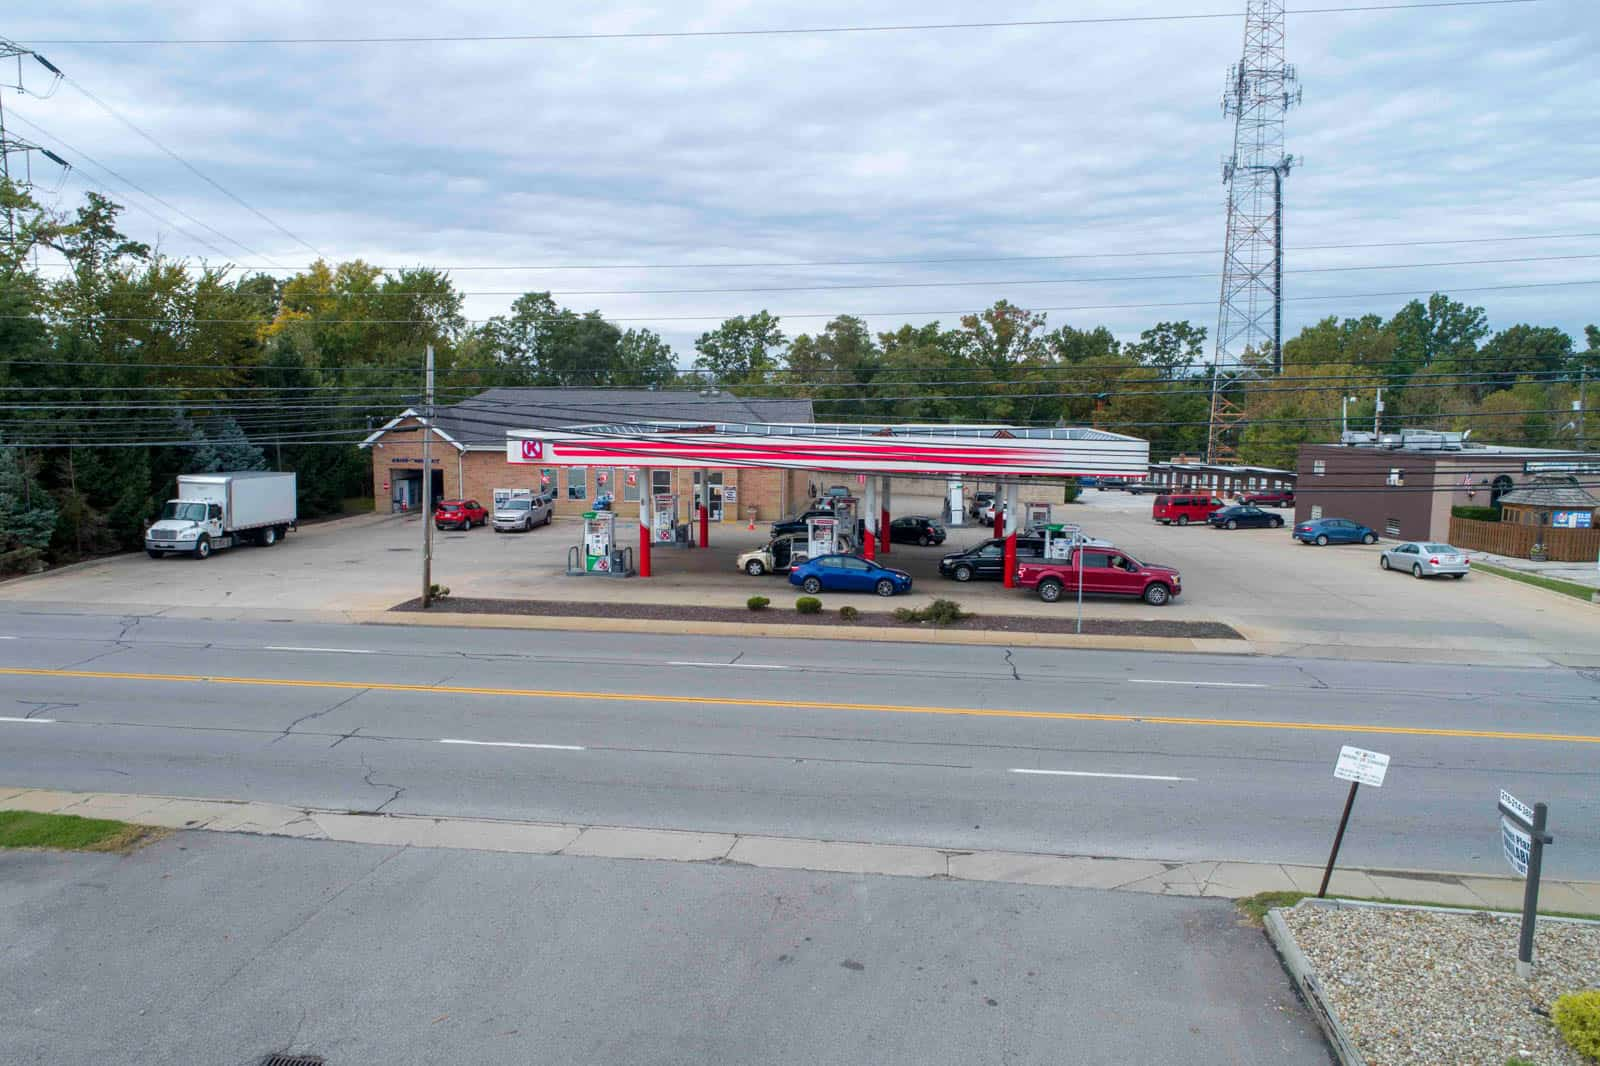 aerial drone photo of gas station taken from across the street in Northfield, Ohio